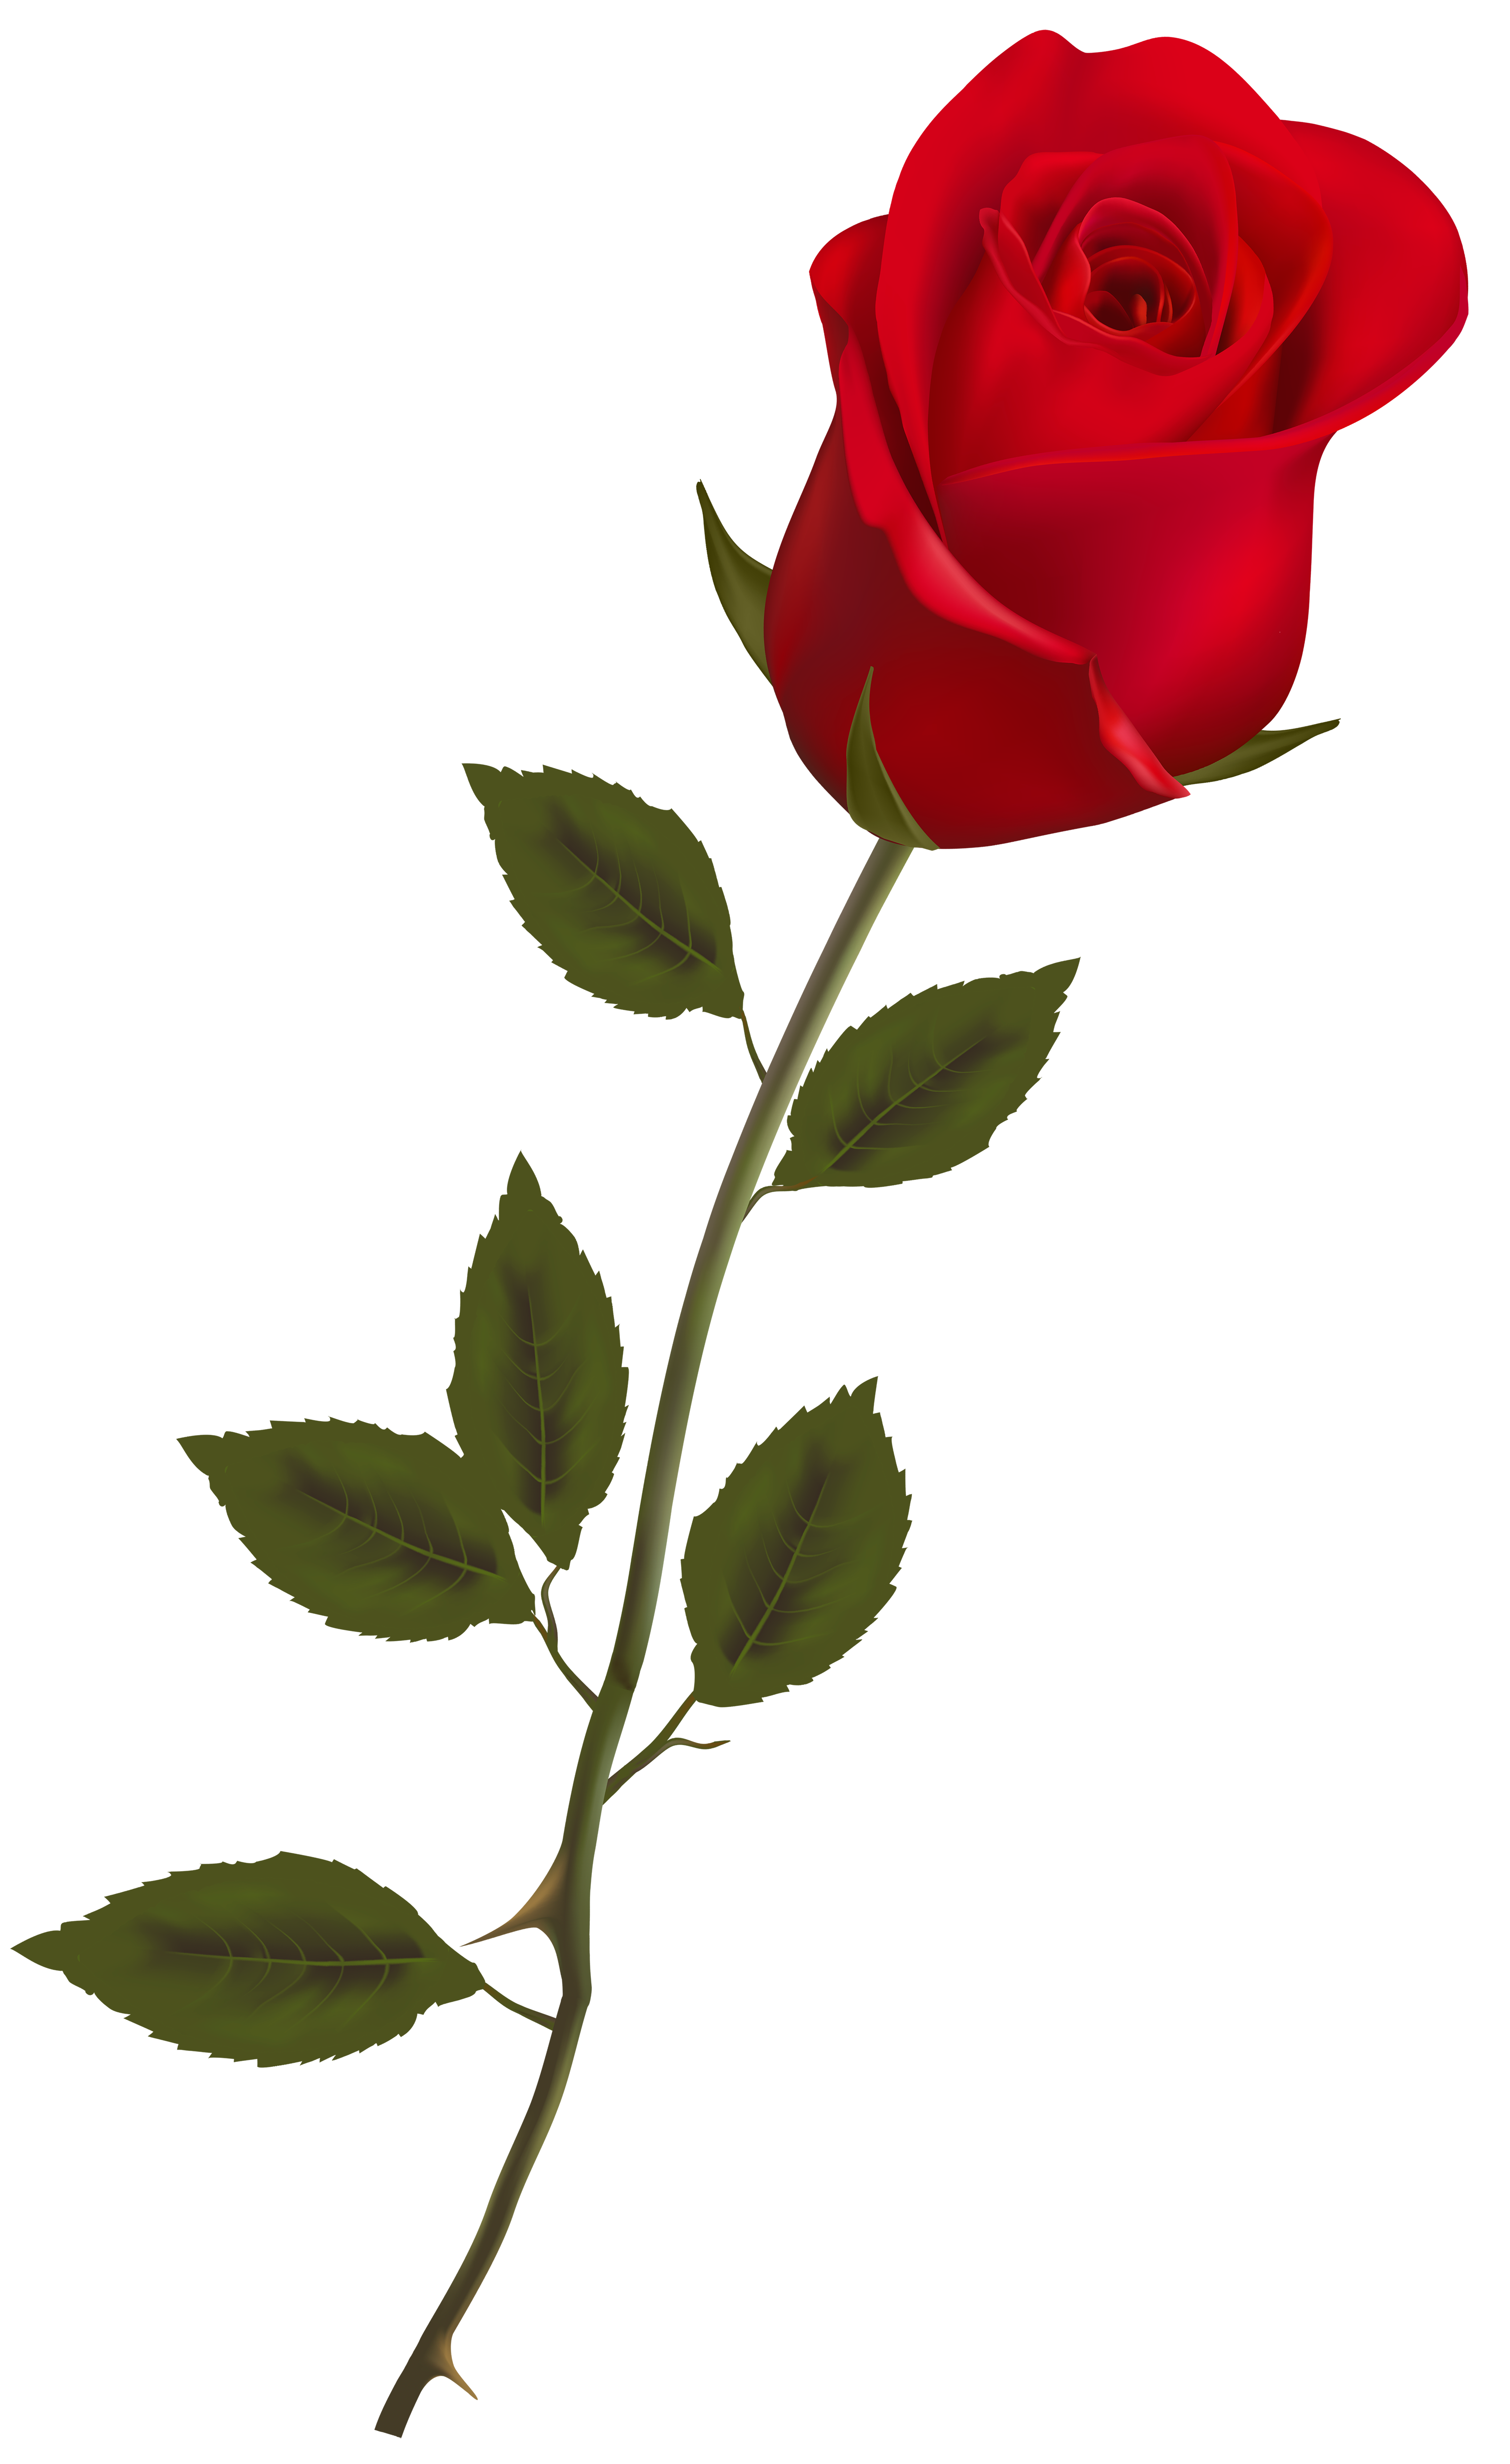 Free Rose Flower Png - ClipArt Best